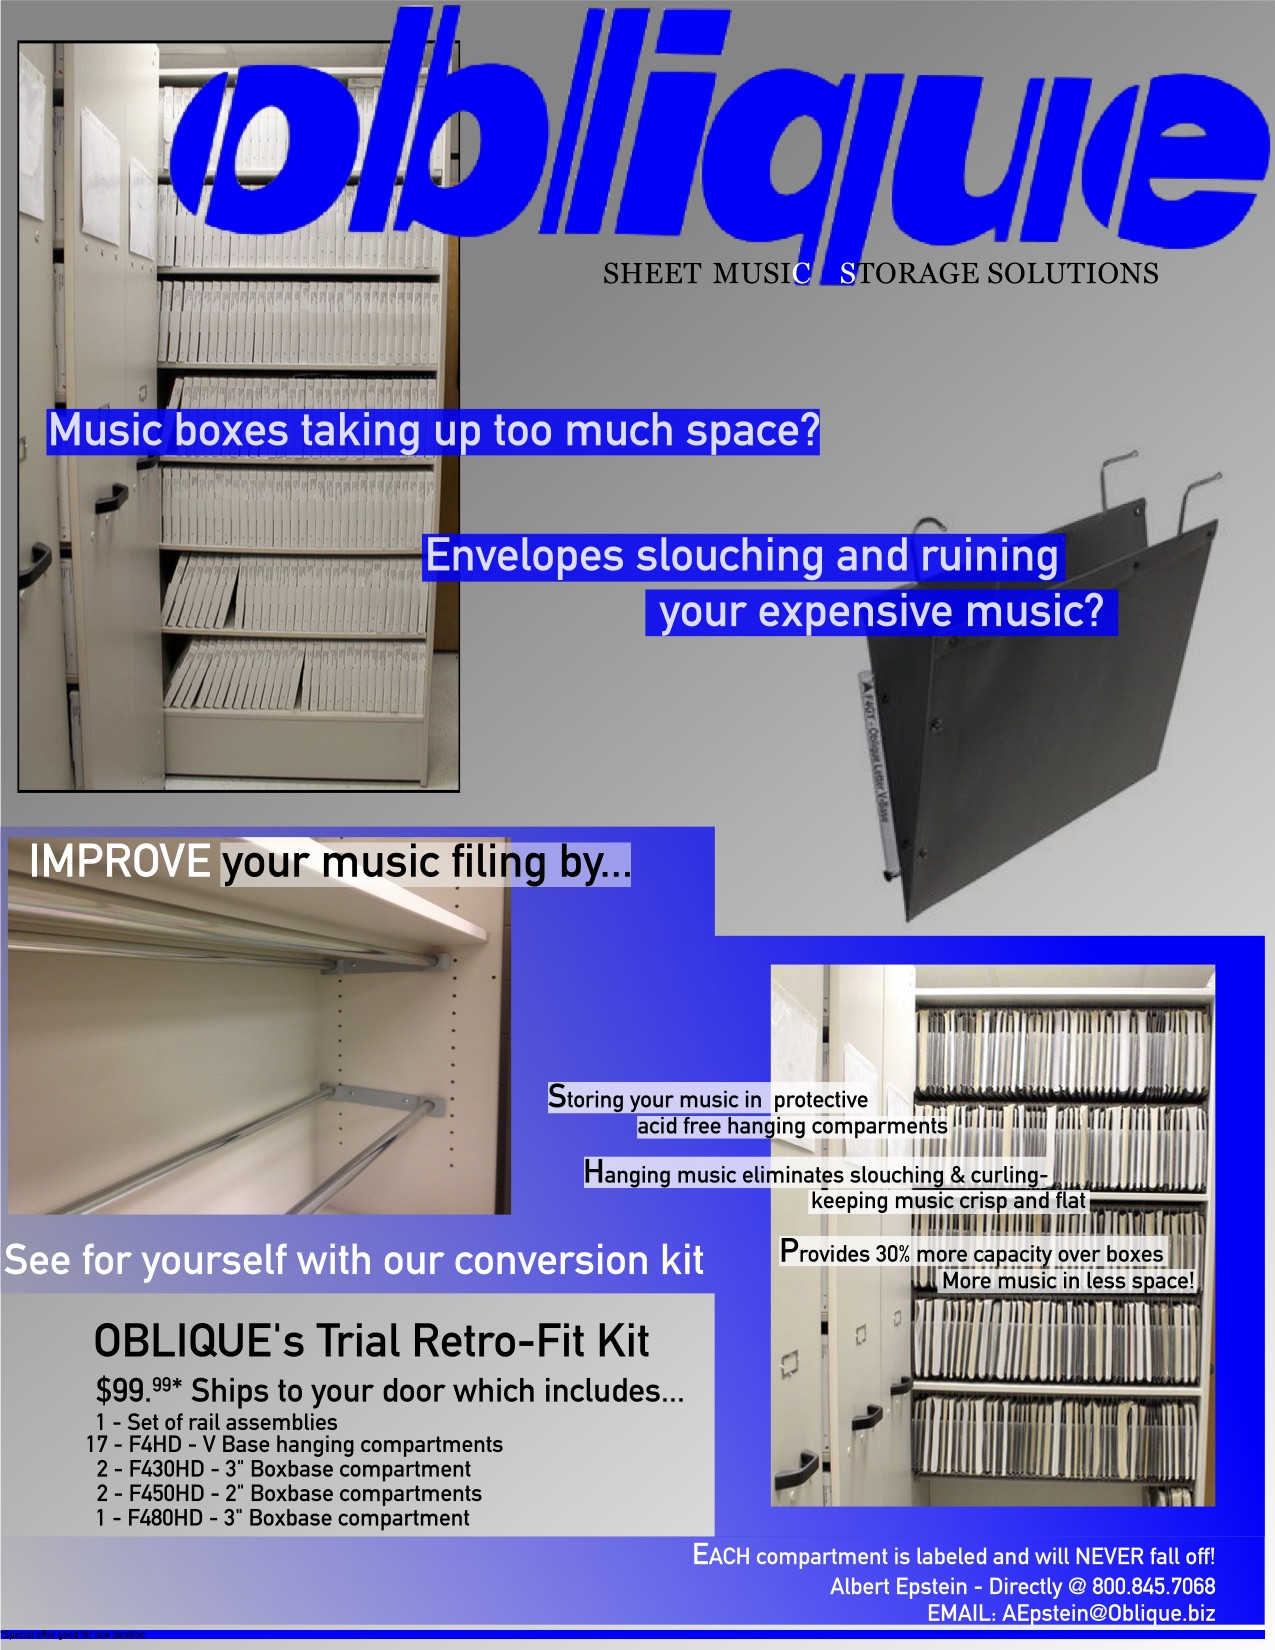 OBLIQUE Sheet Music Storage Wenger Music Library RetroFit Kit FLYER